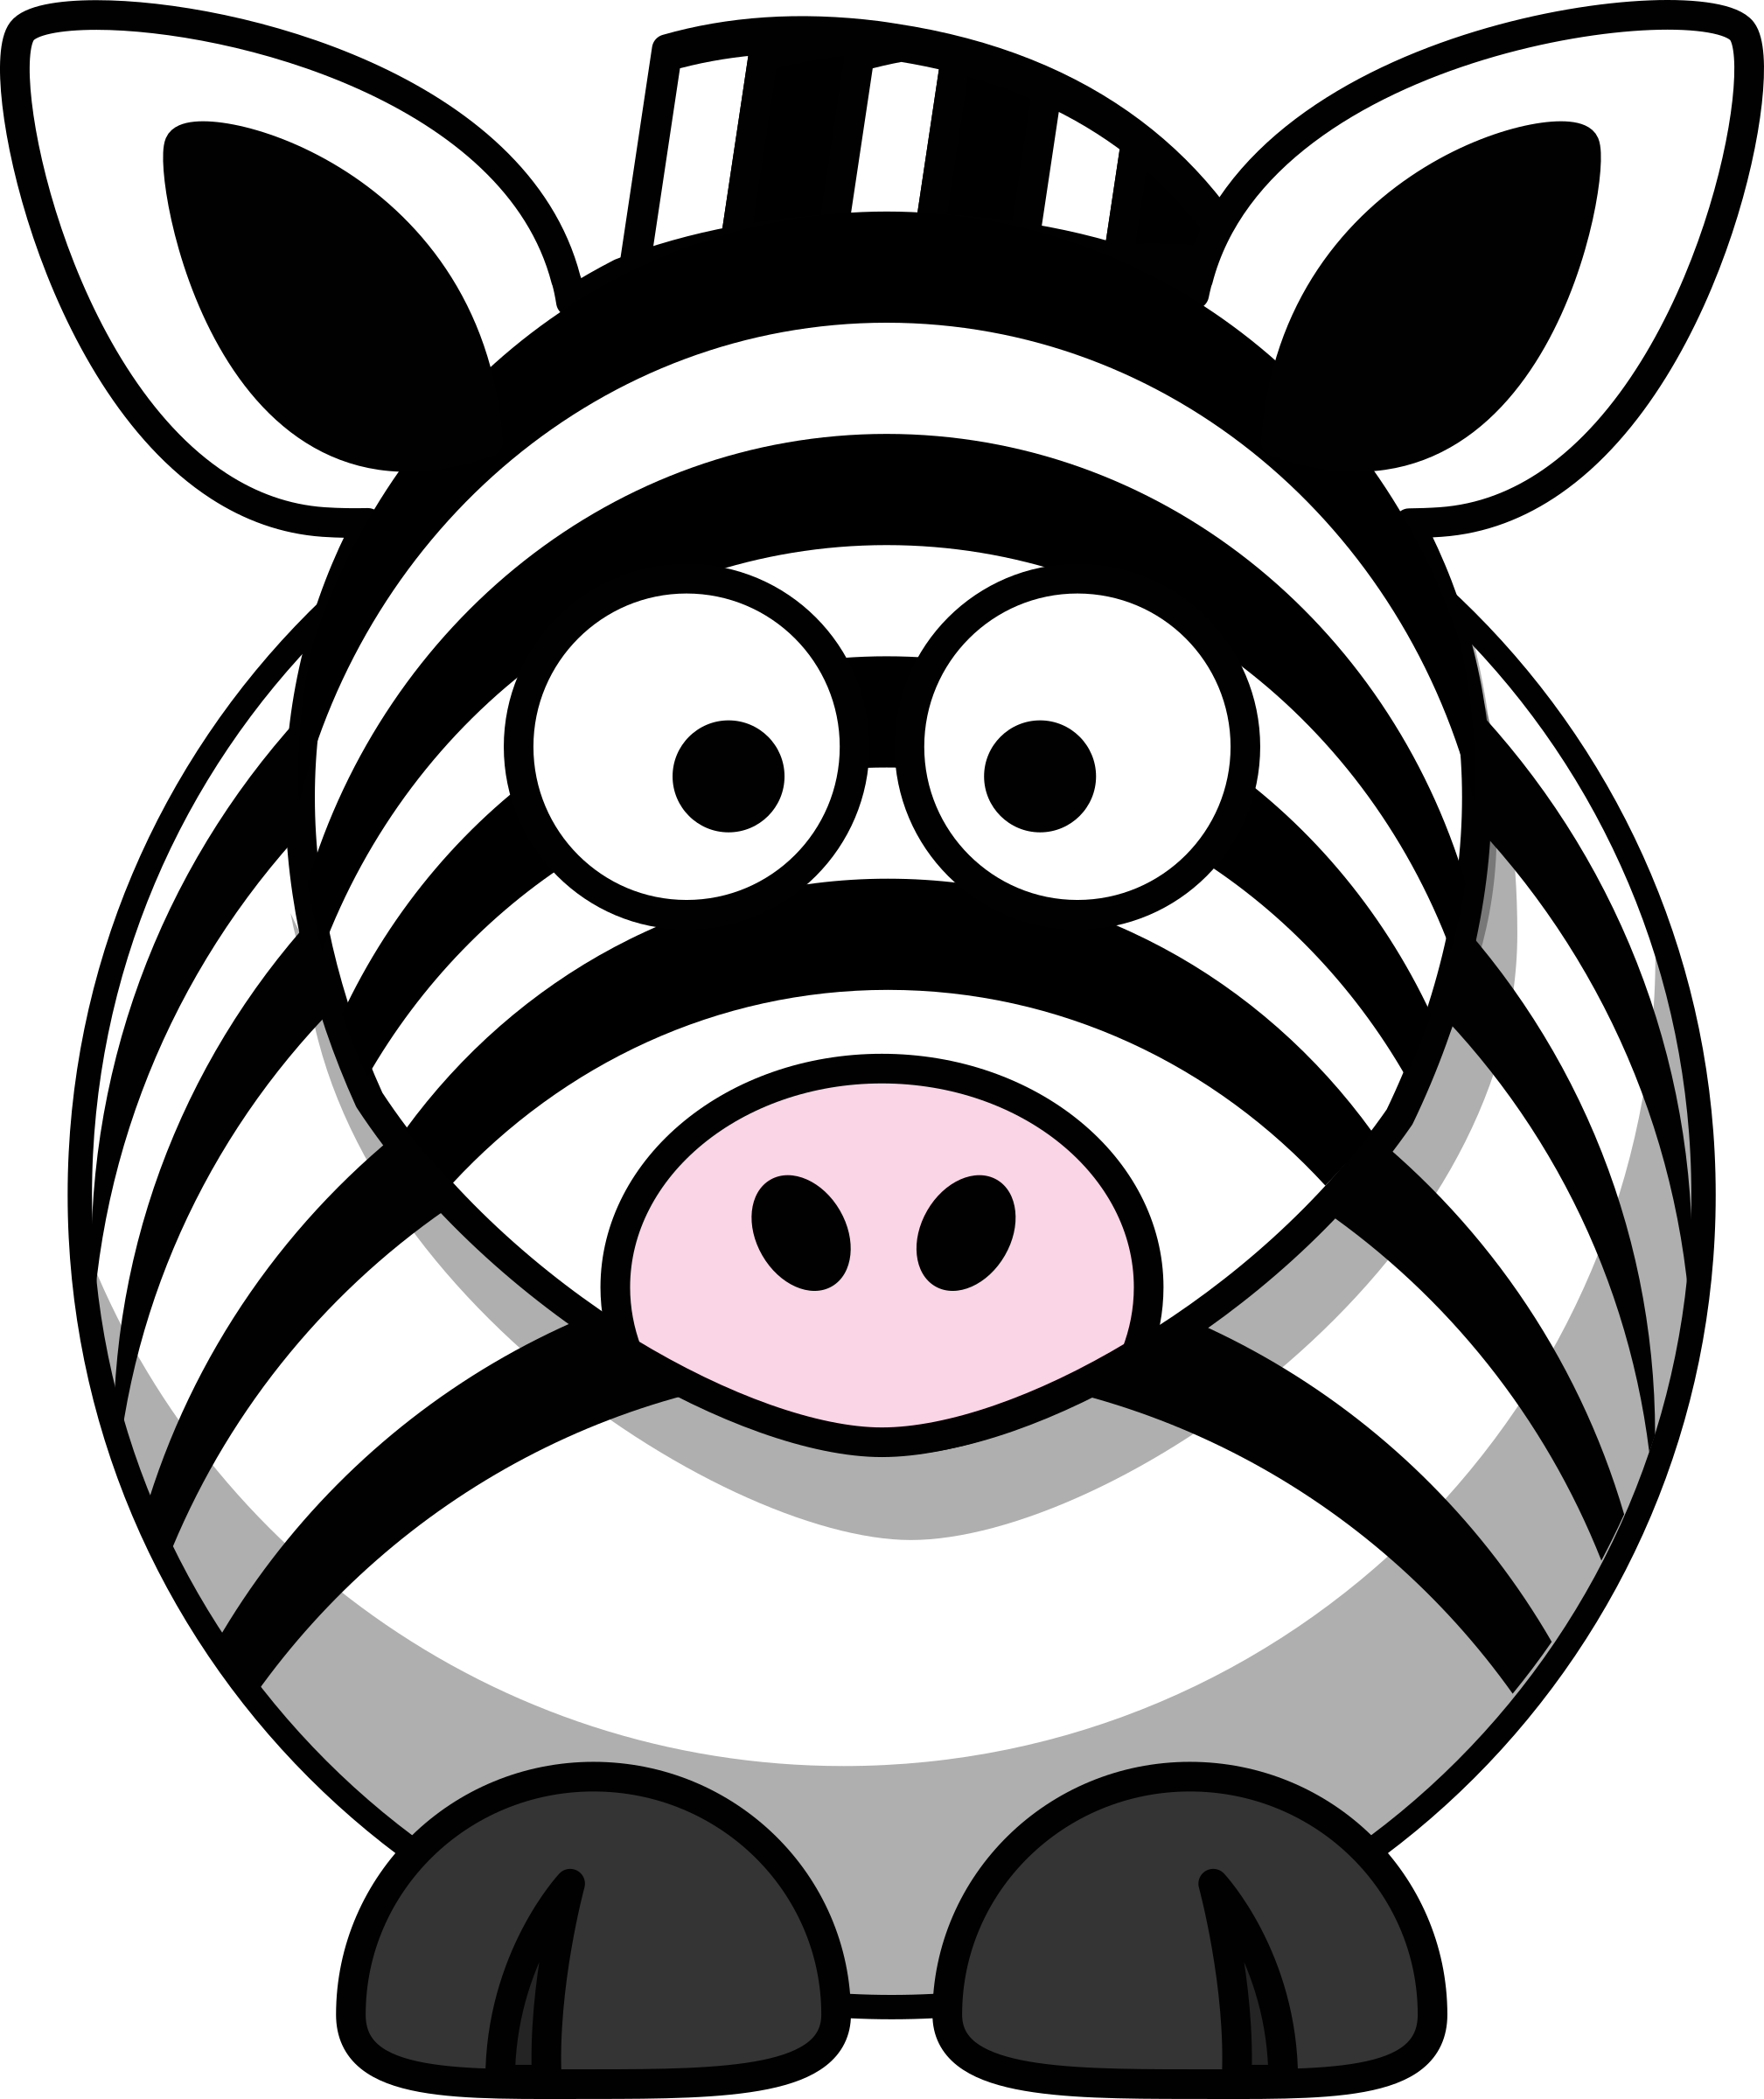 Zebra star clipart picture black and white Cartoon zebra Icons PNG - Free PNG and Icons Downloads picture black and white